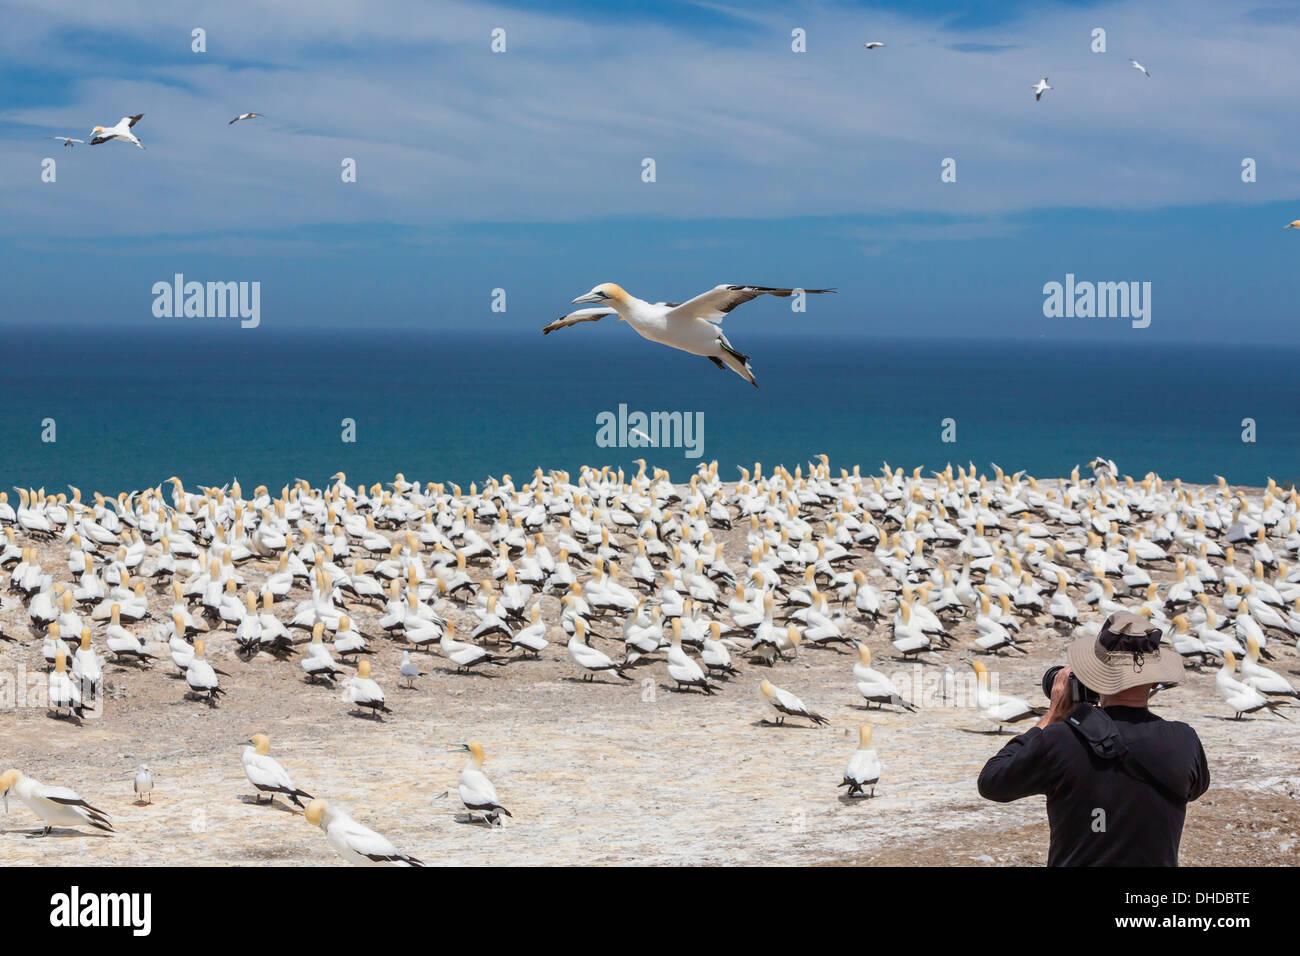 Australasian gannet (Morus serrator), breeding colony at Cape Kidnappers, North Island, New Zealand, Pacific - Stock Image